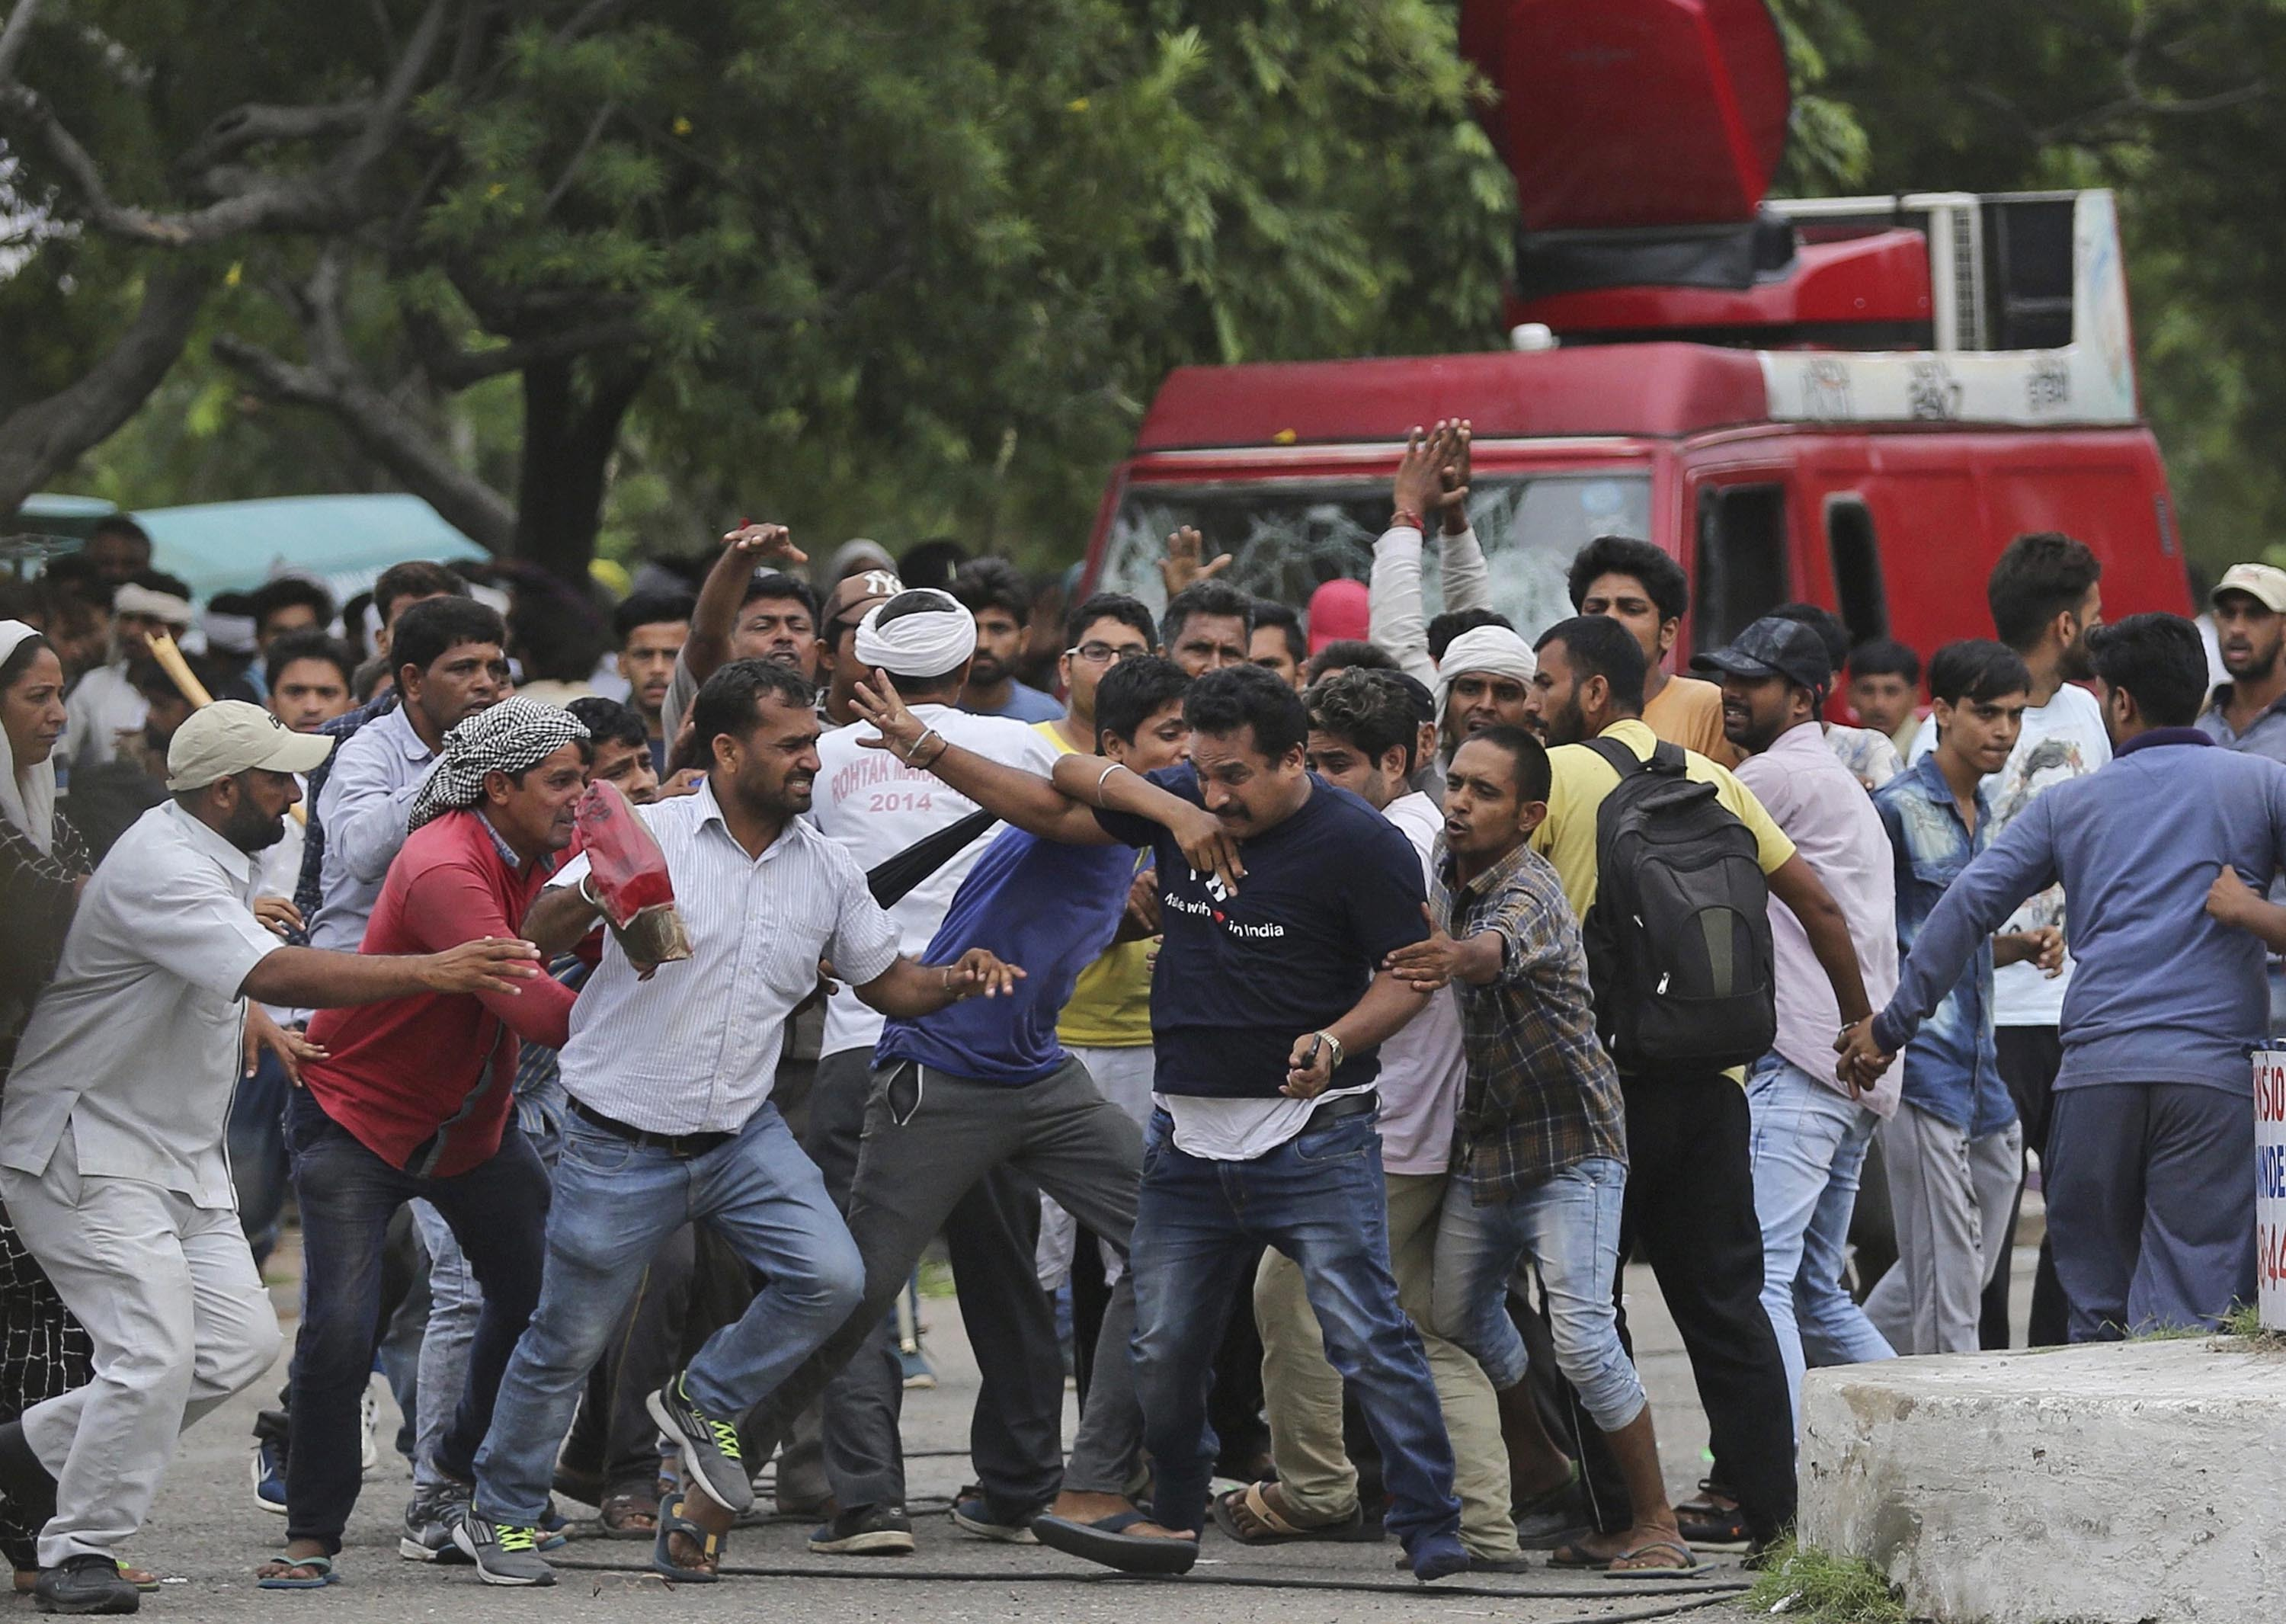 The chief minister of Haryana said at least 700 protestors have been detained, and six Army columns have been deployed in the state. (Credit: PTI)